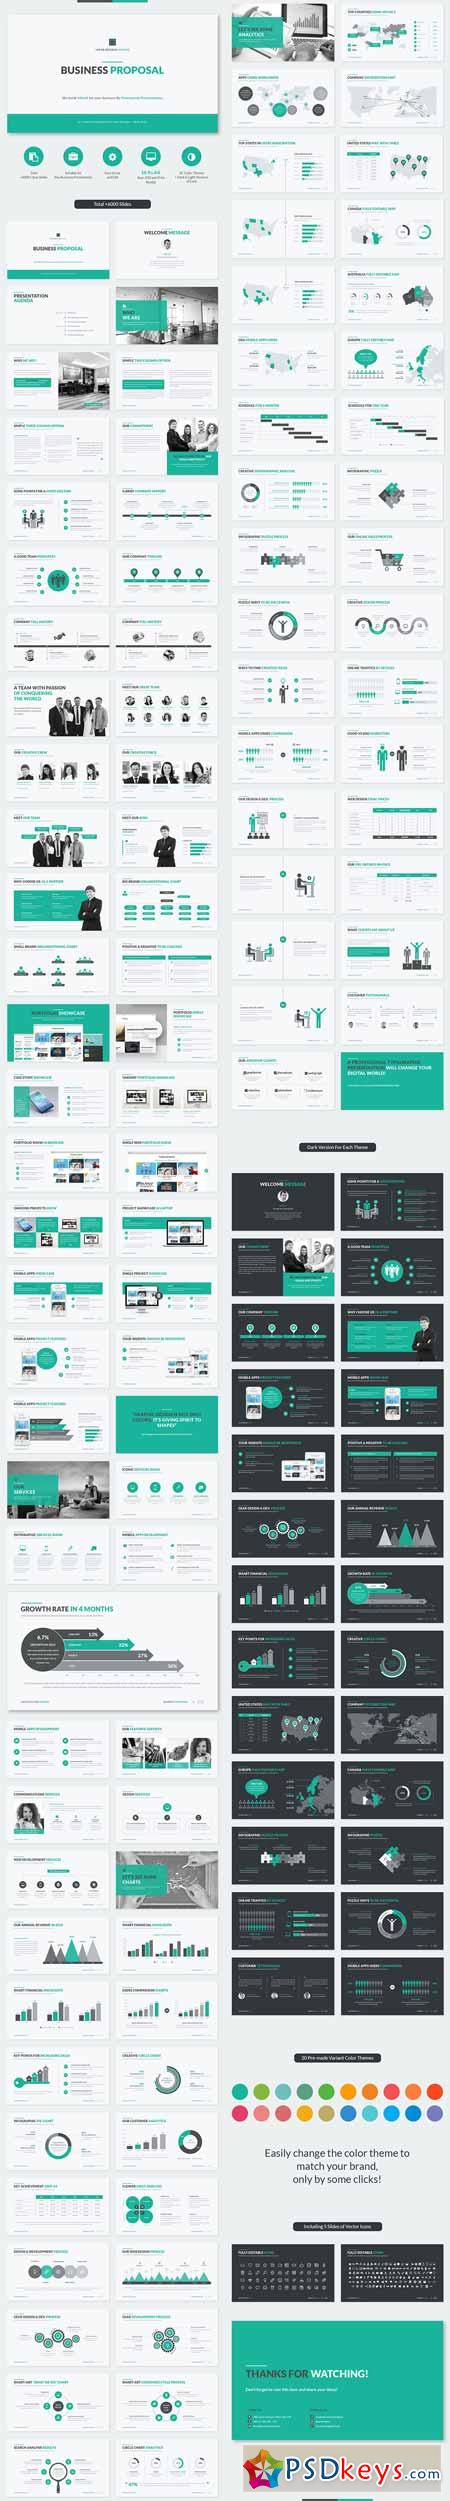 powerpoint templates torrents - business proposal powerpoint template 11833931 free